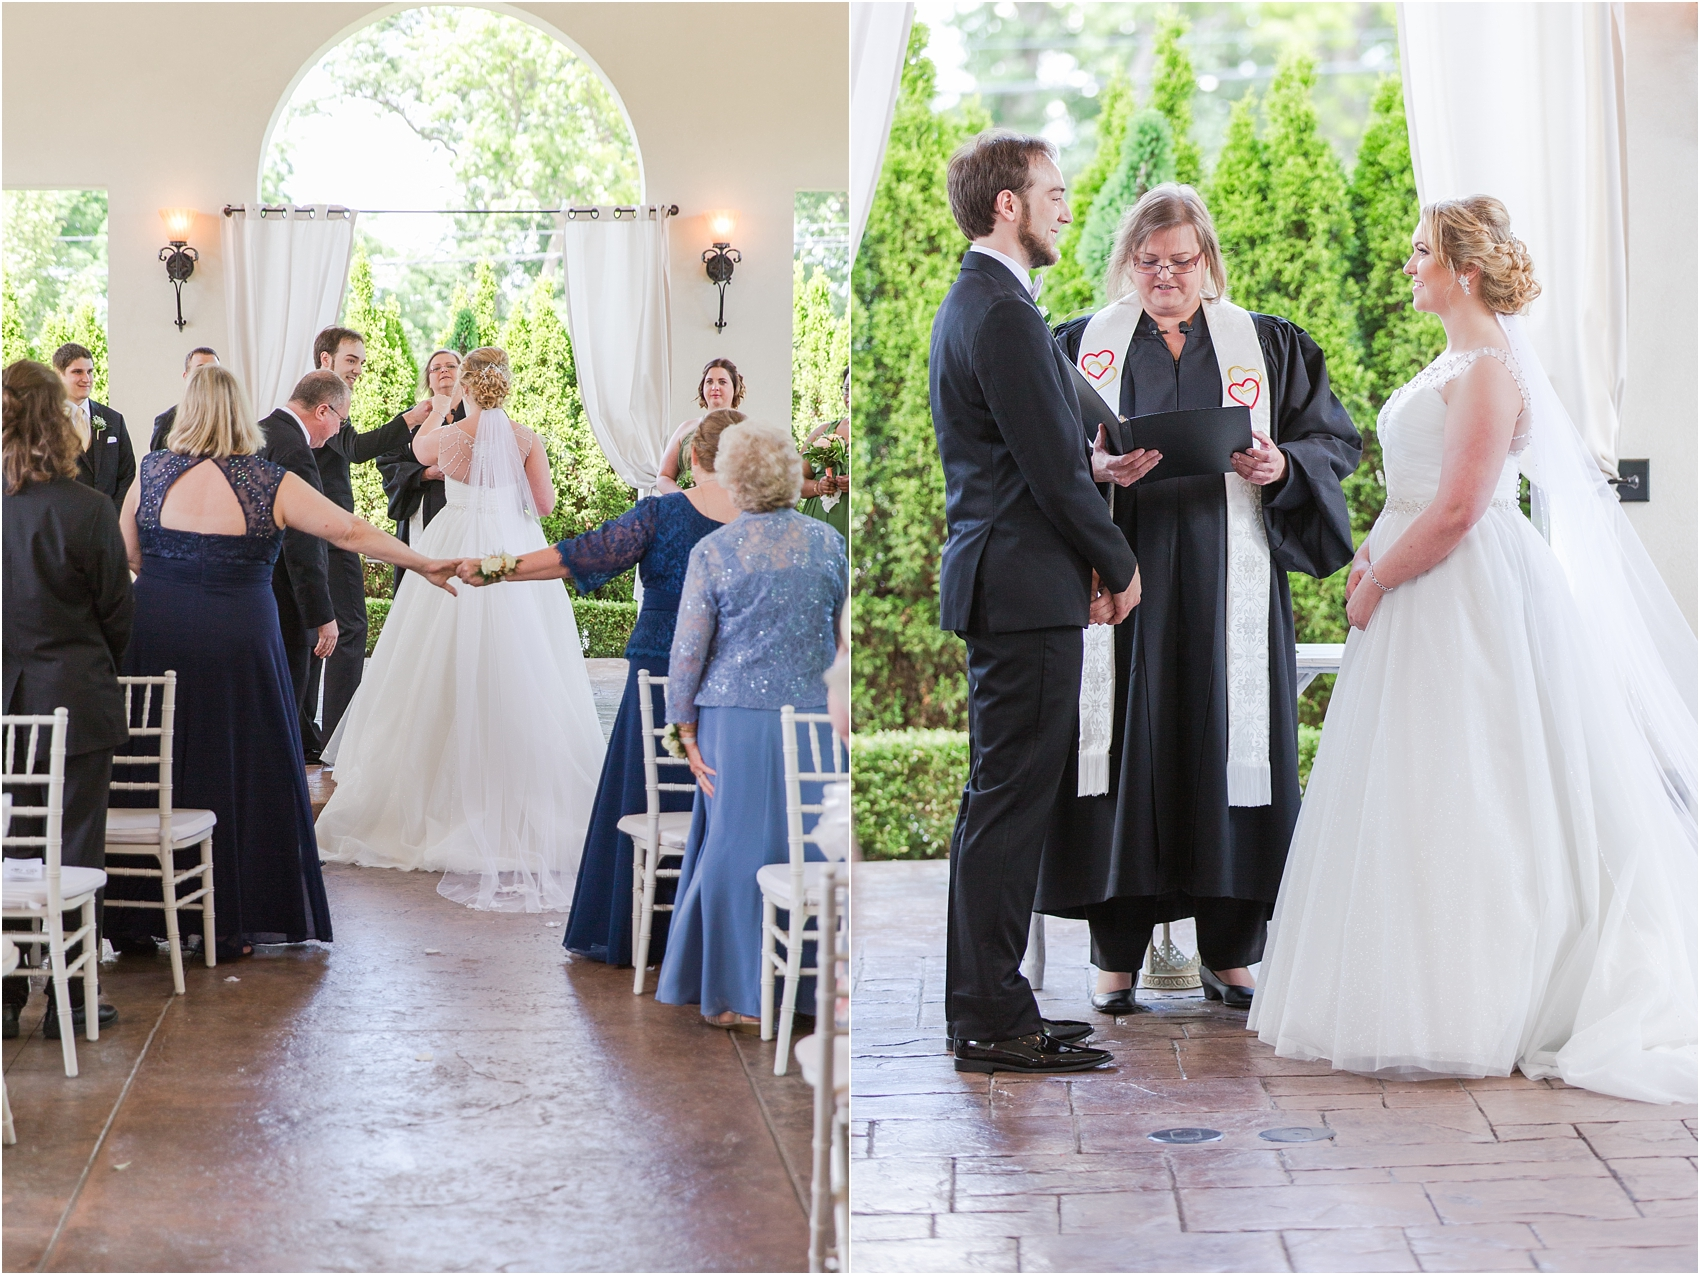 lord-of-the-rings-inspired-wedding-photos-at-crystal-gardens-in-howell-mi-by-courtney-carolyn-photography_0033.jpg